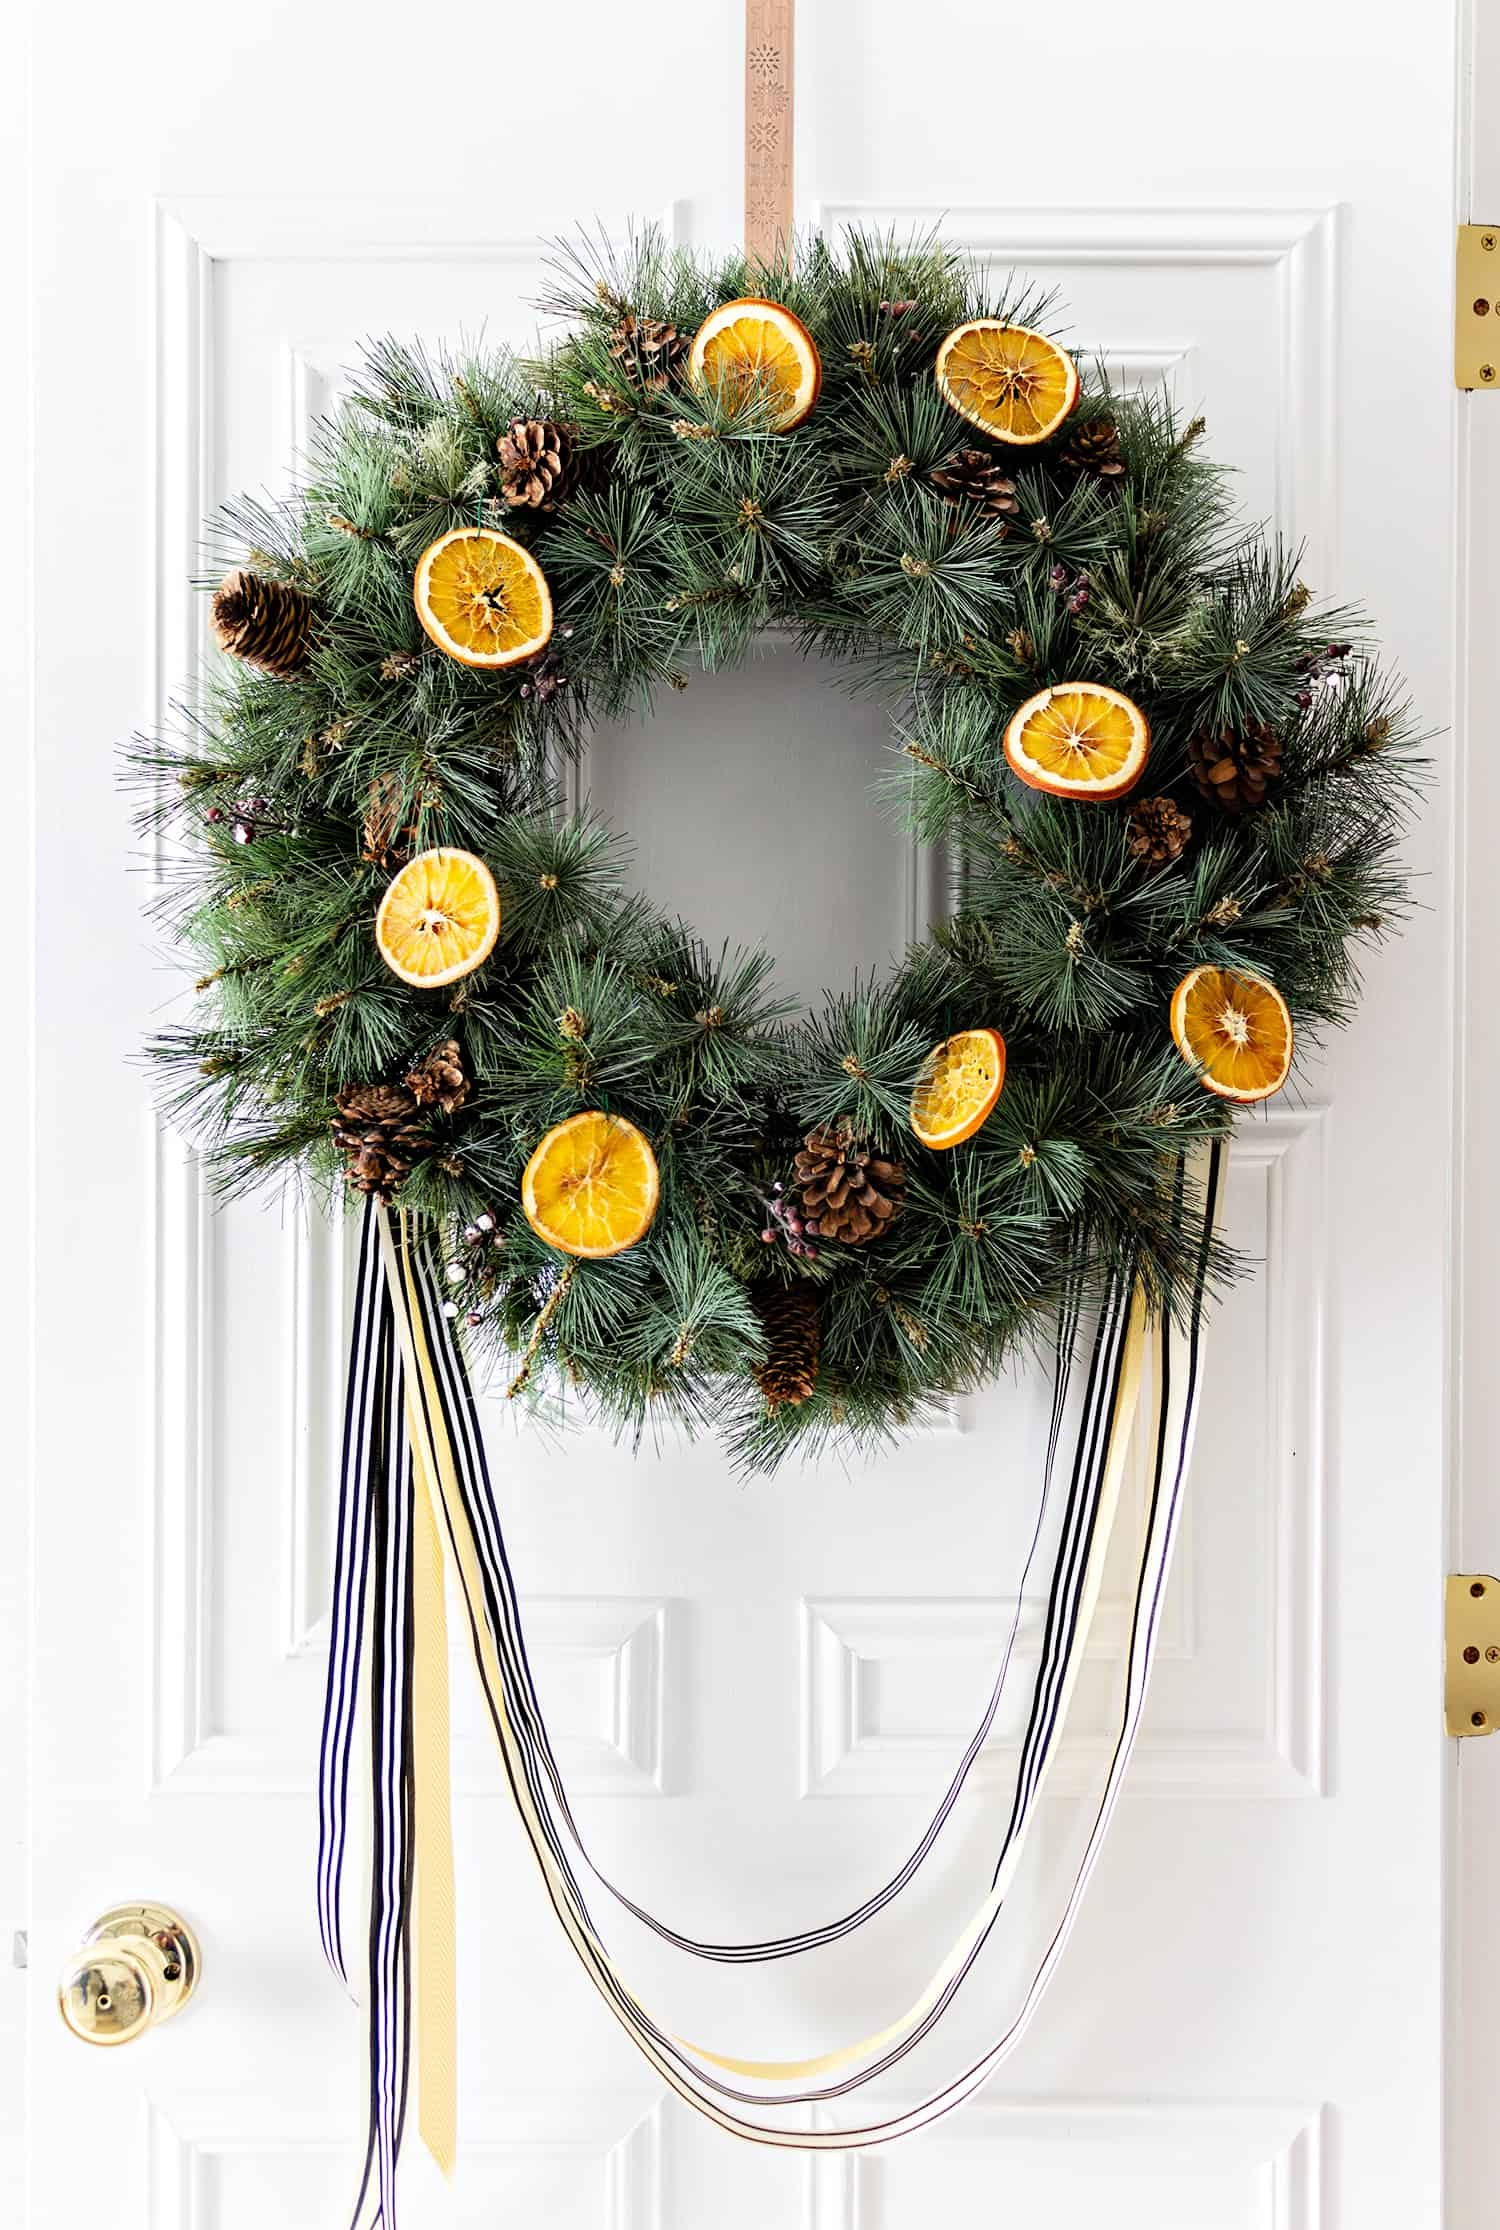 How to bake orange slices to use them in holiday decorating. I added them to a faux wreath and love how it turned out.